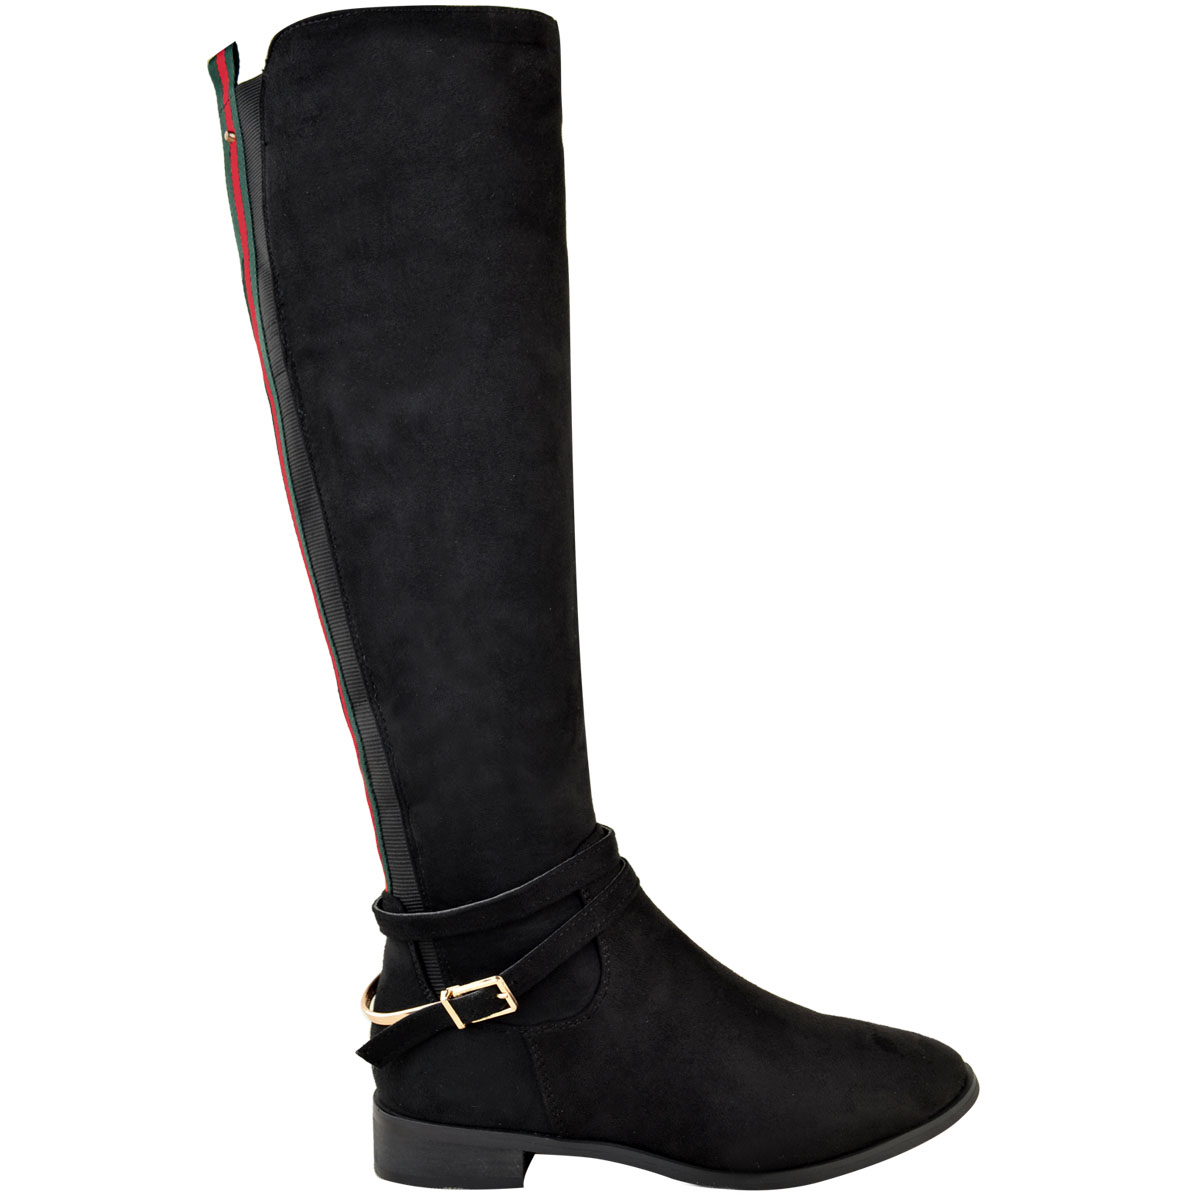 Womens-Ladies-Flat-Stretch-Knee-High-Riding-Boots-Grip-Sole-Winter-Shoes-Size-UK Indexbild 10